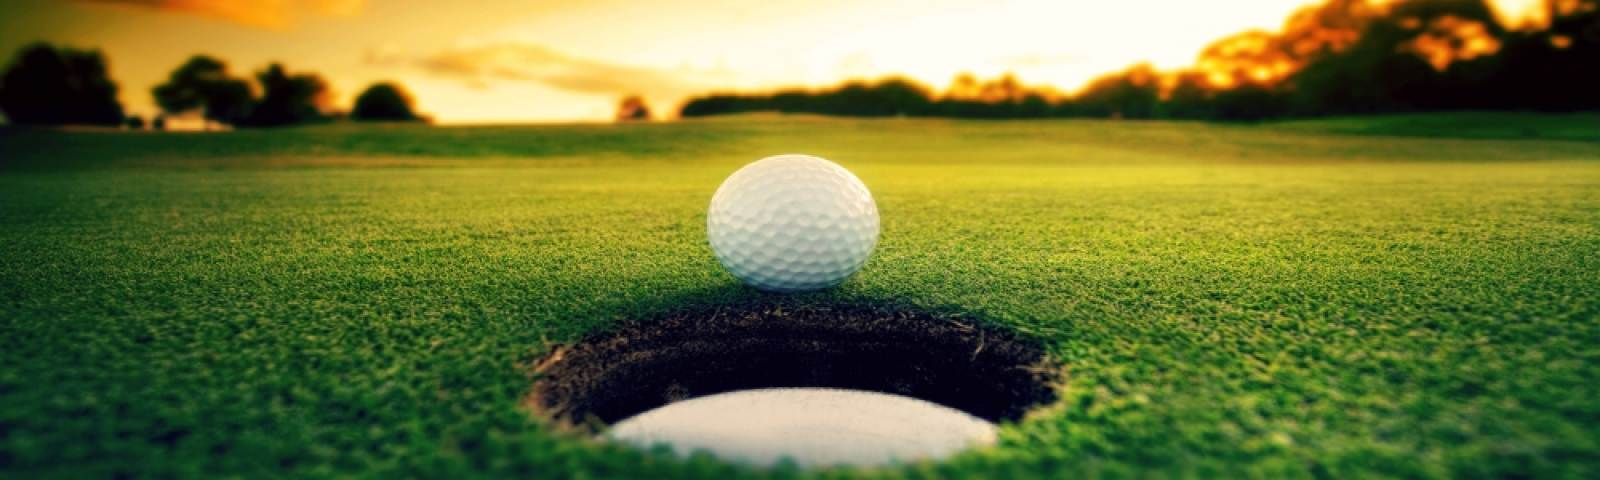 "<h1><span style=""color: #ffffff;"">SAVE THE DATE!</span></h1>